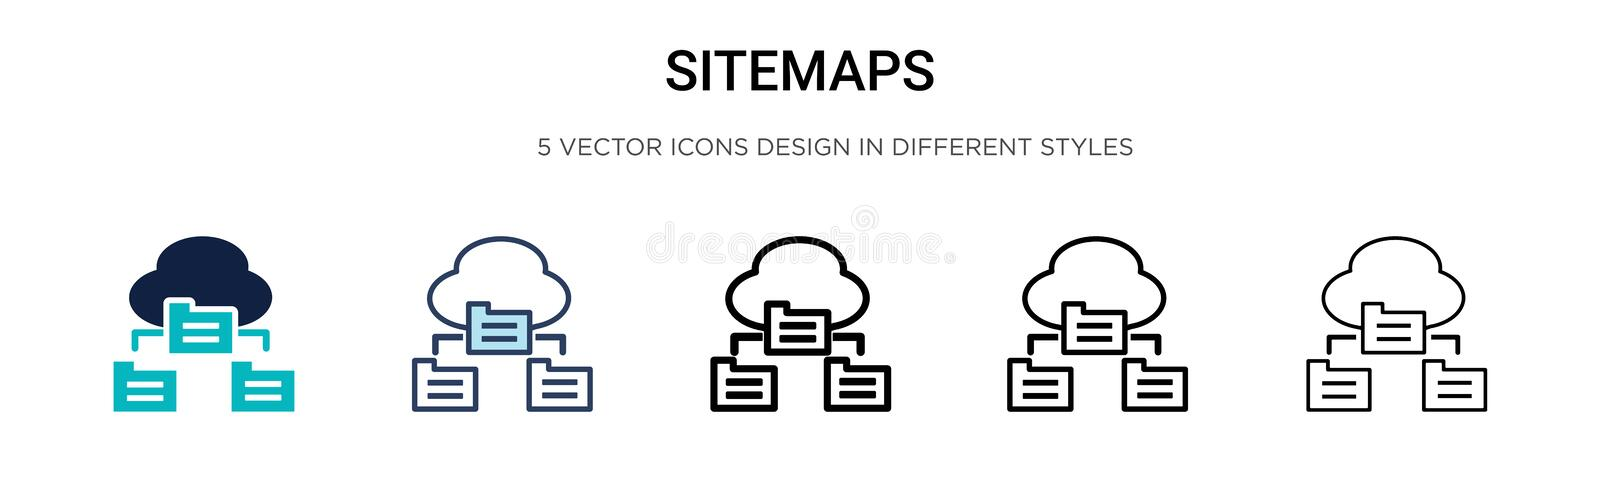 Sitemaps icon in filled, thin line, outline and stroke style. Vector illustration of two colored and black sitemaps vector icons. Designs can be used for mobile vector illustration